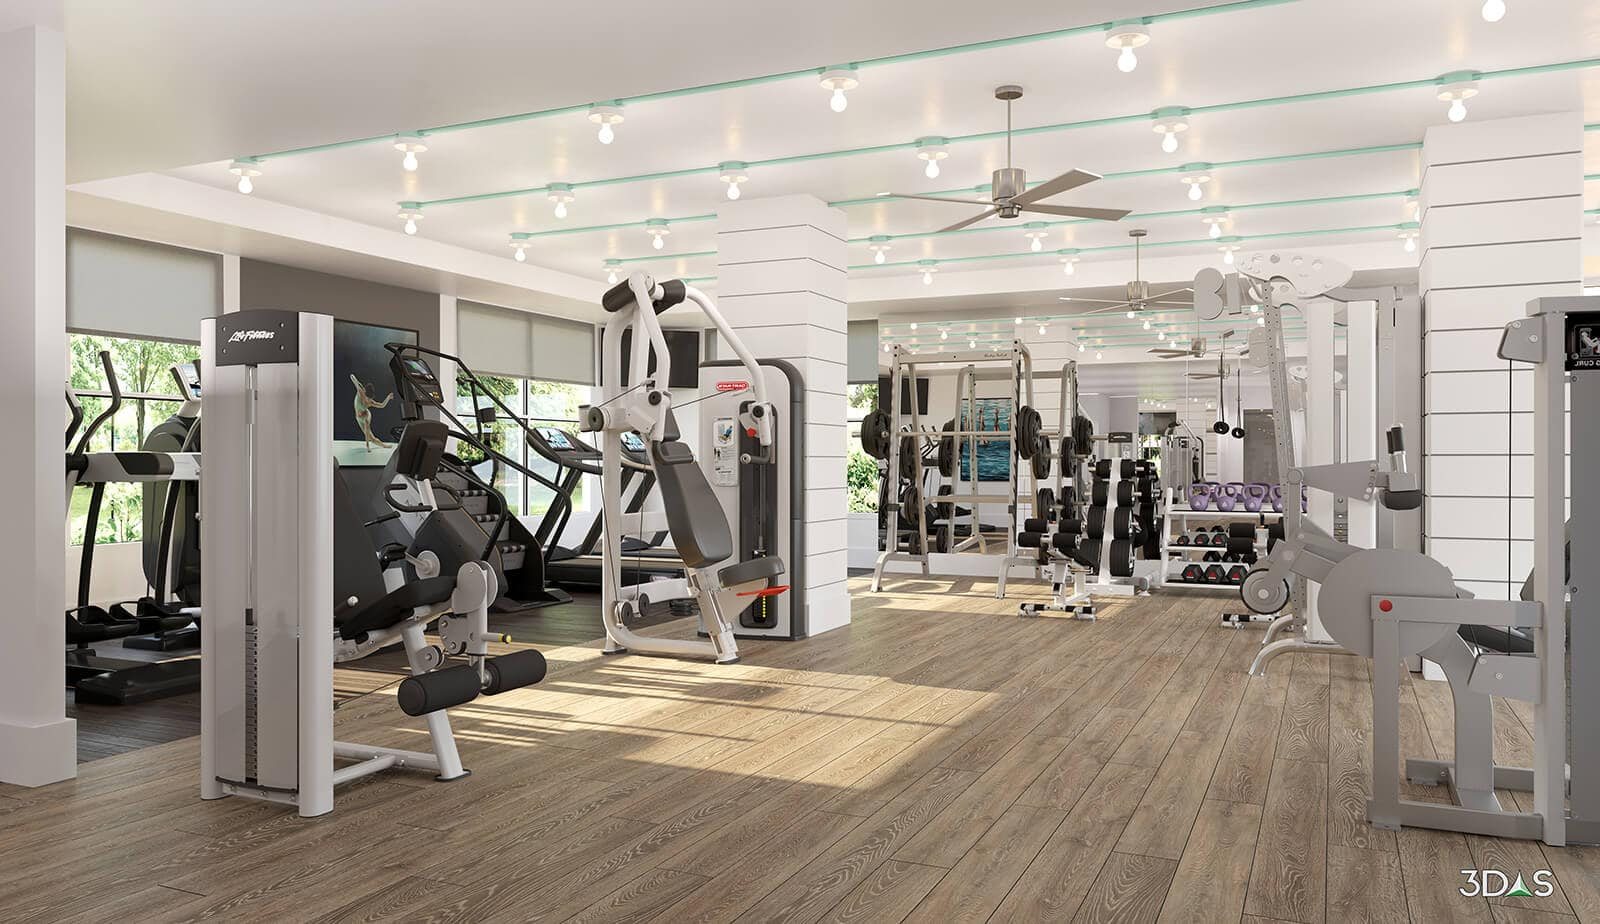 Avana Bayview is located in Pompano Beach, Florida. Fitness / Gym 3D Interior Rendering by 3DAS